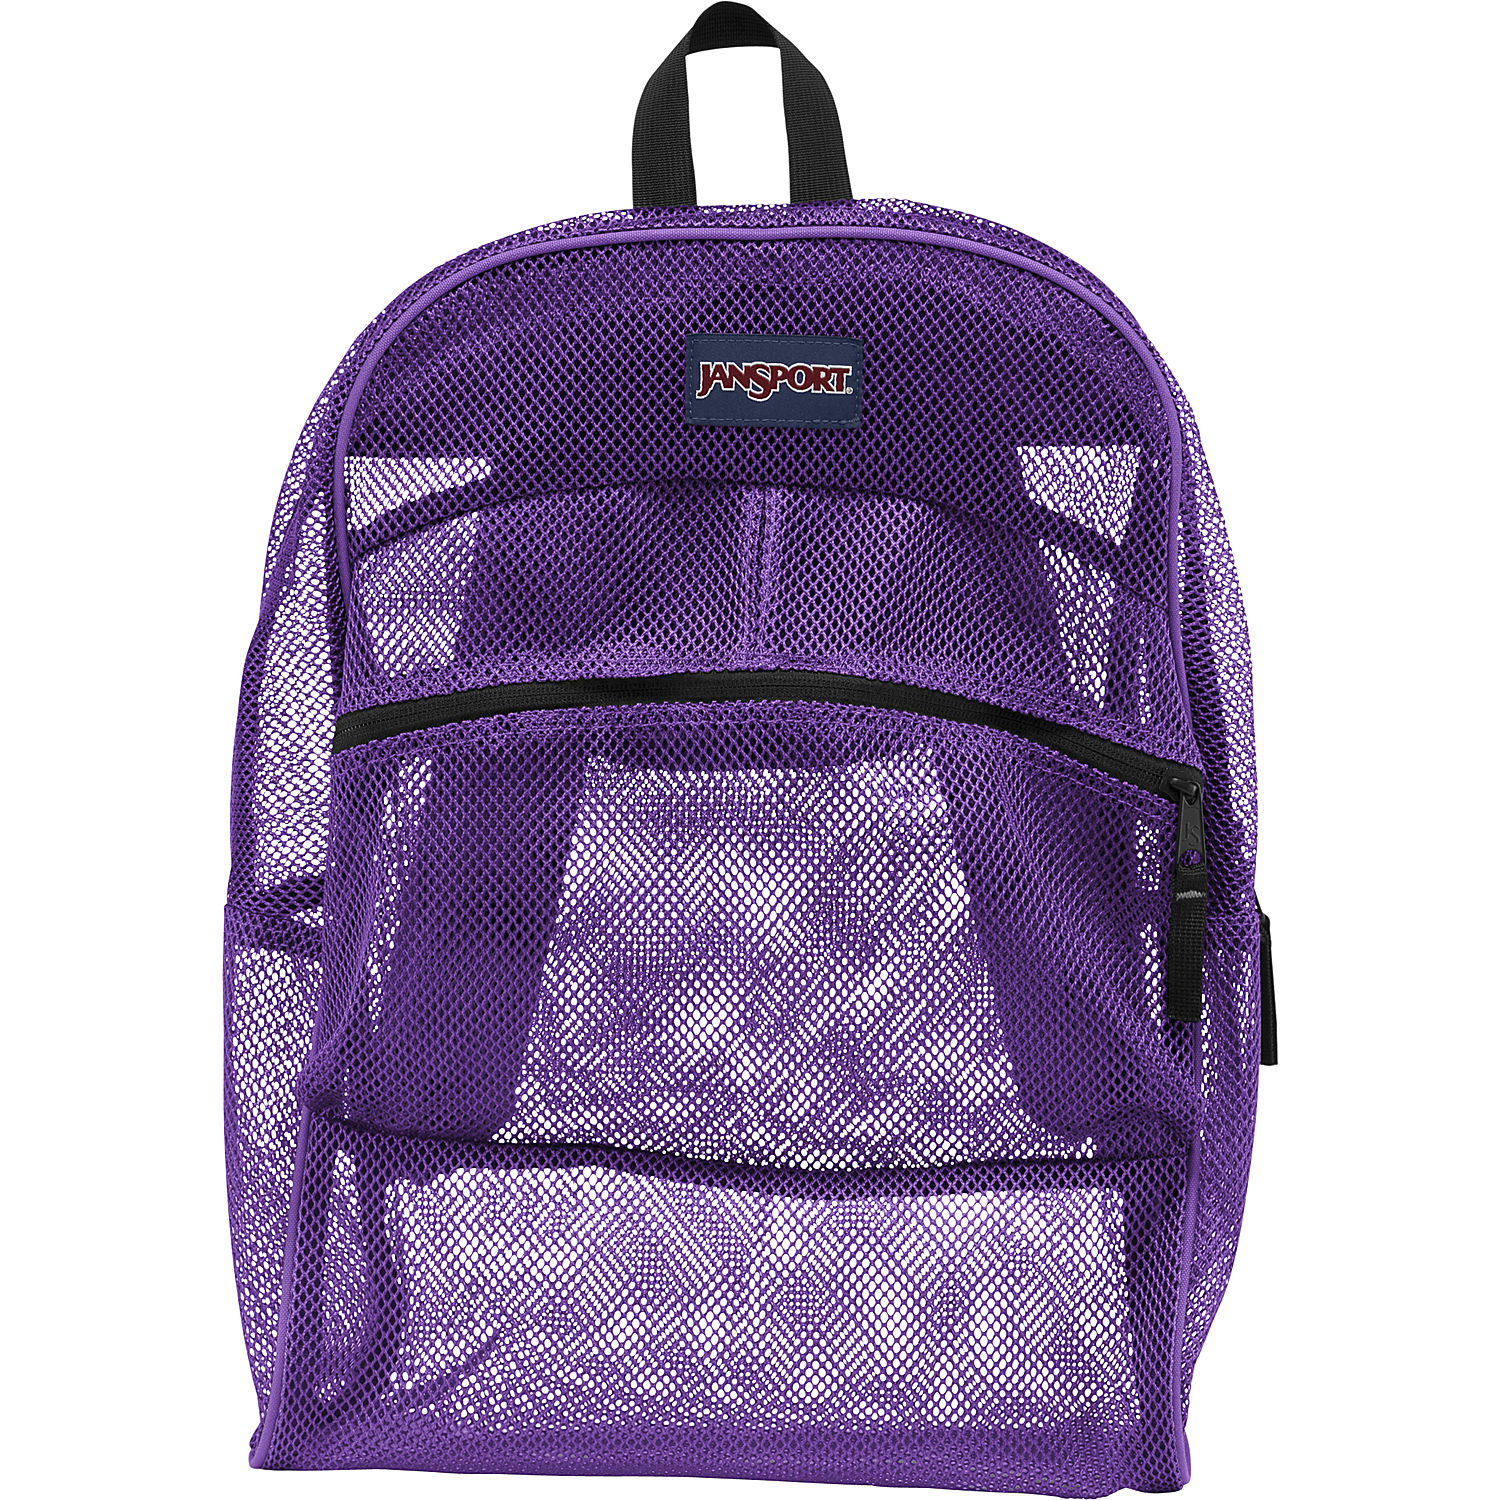 JanSport Mesh Pack School Backpack - Purple Night